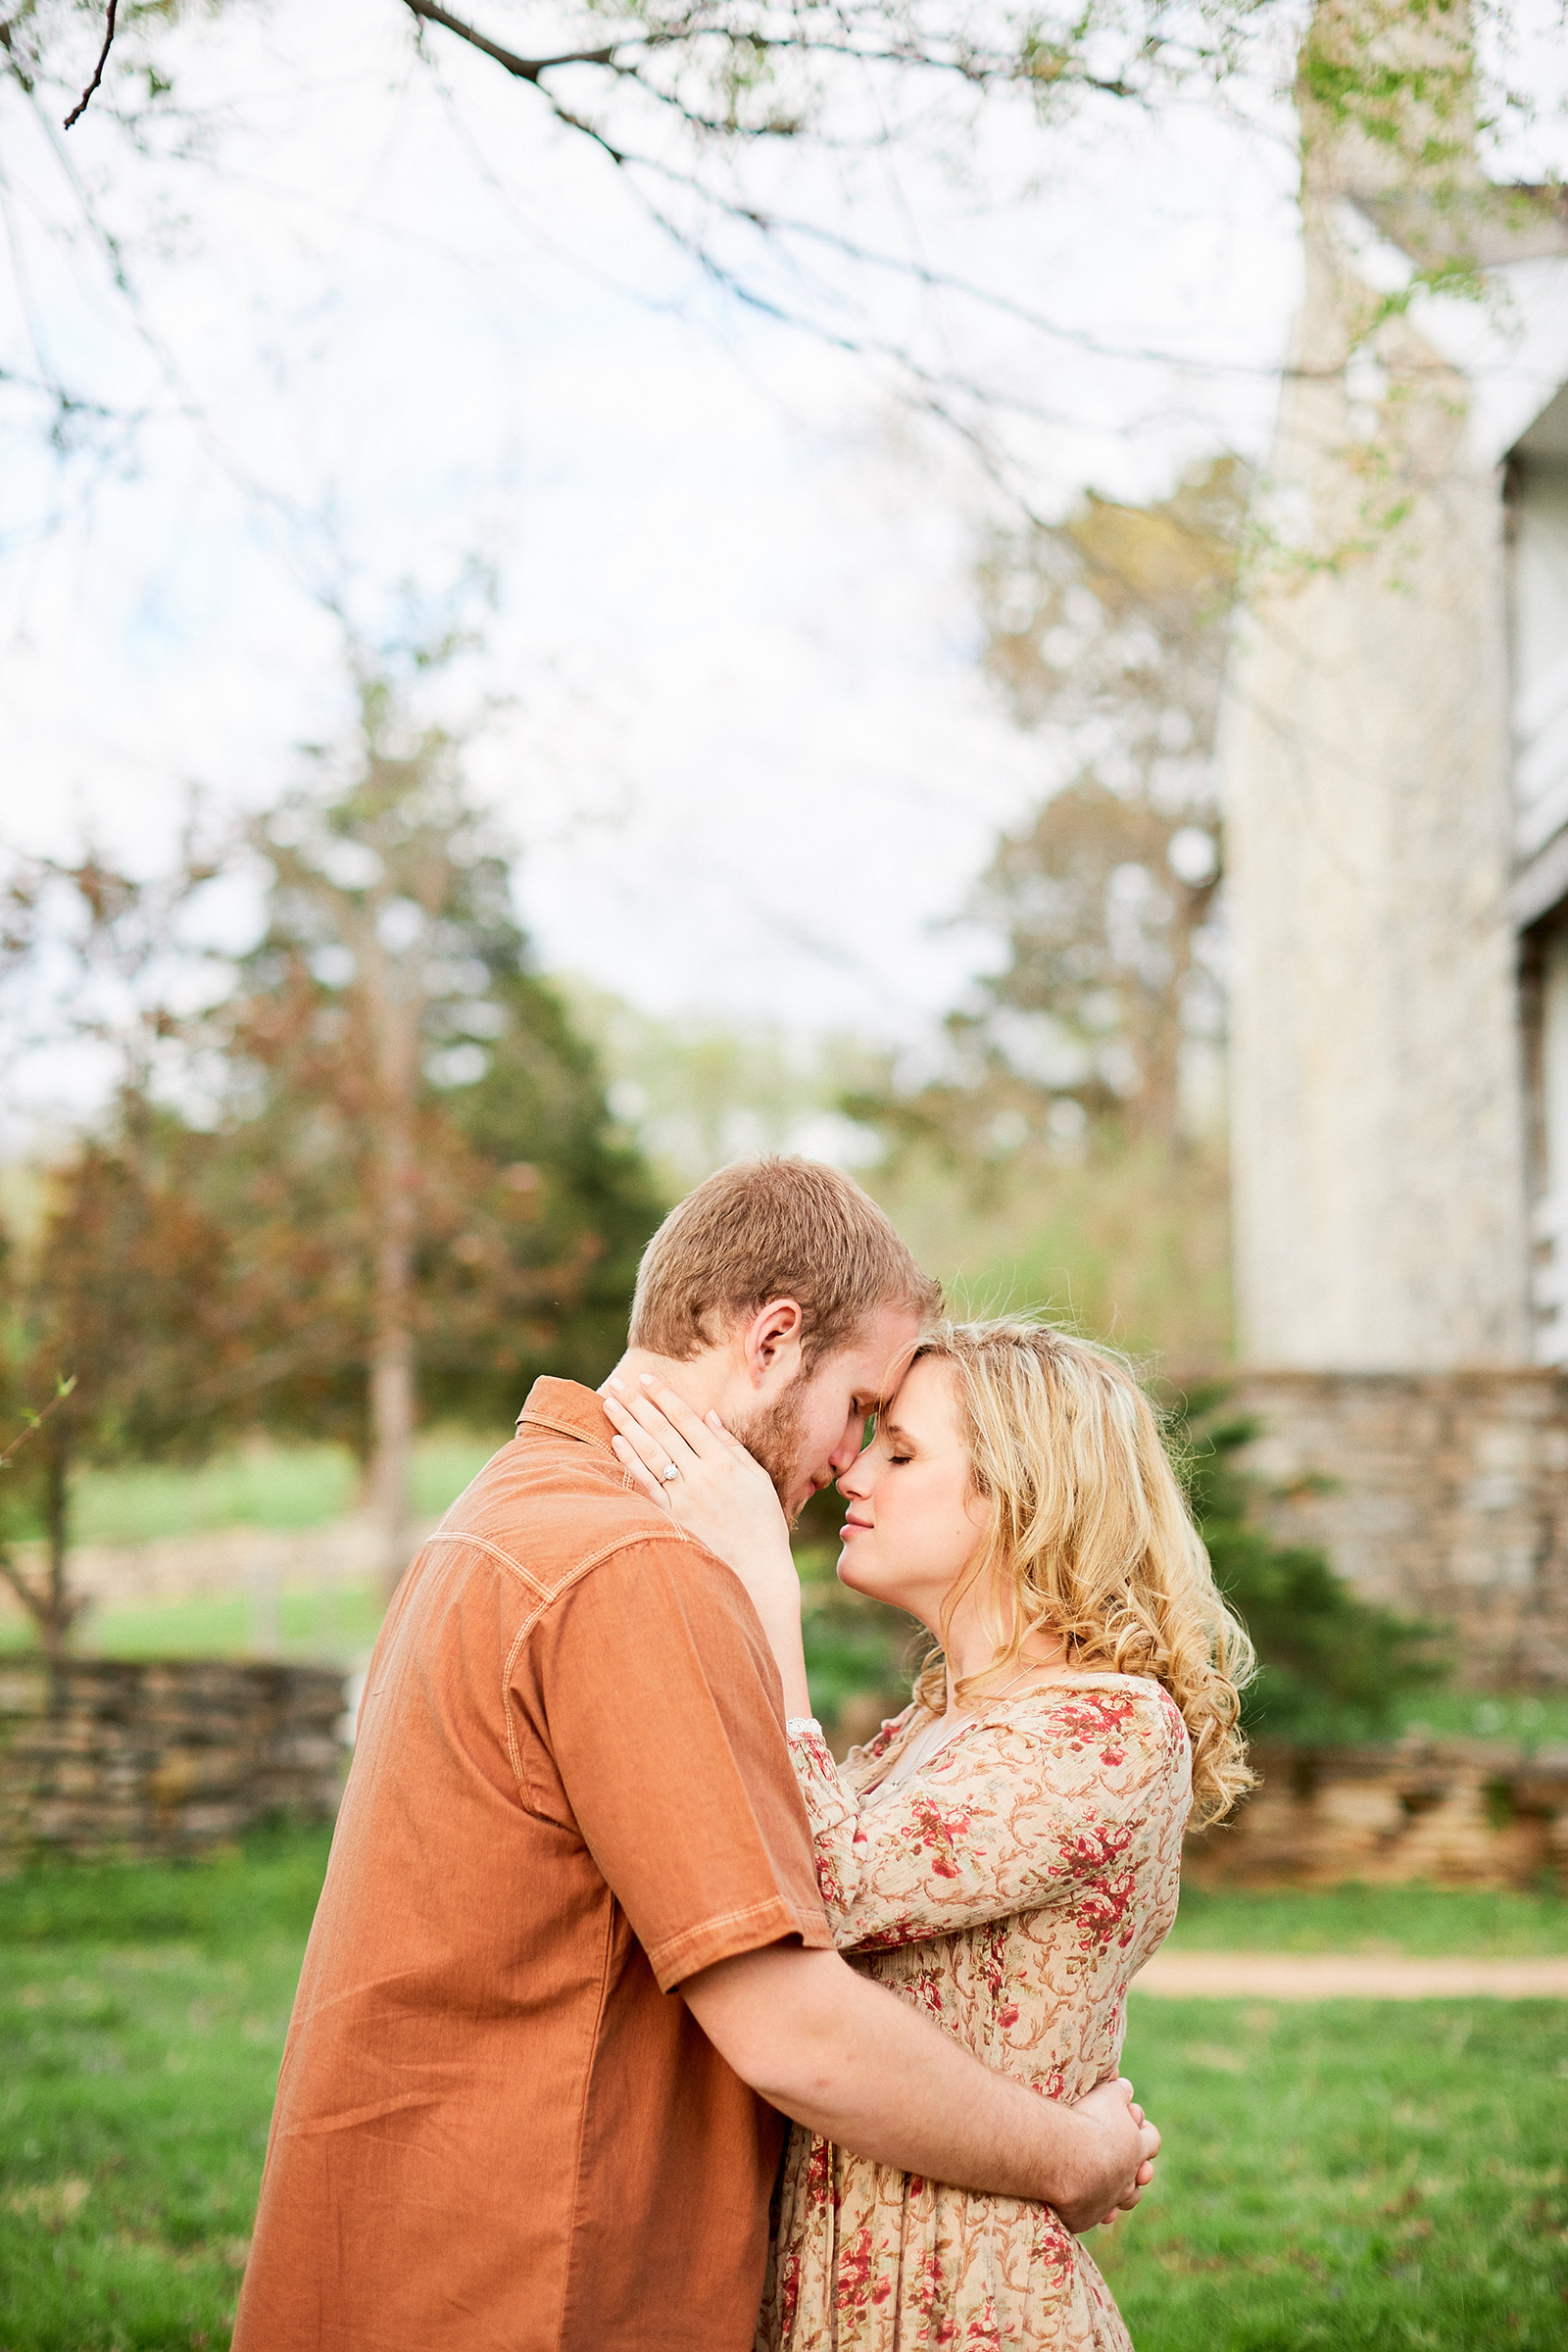 Daniel Boone Home Engagement Session in St Charles County by Oldani Photography St. Louis Wedding Photographers22.jpg